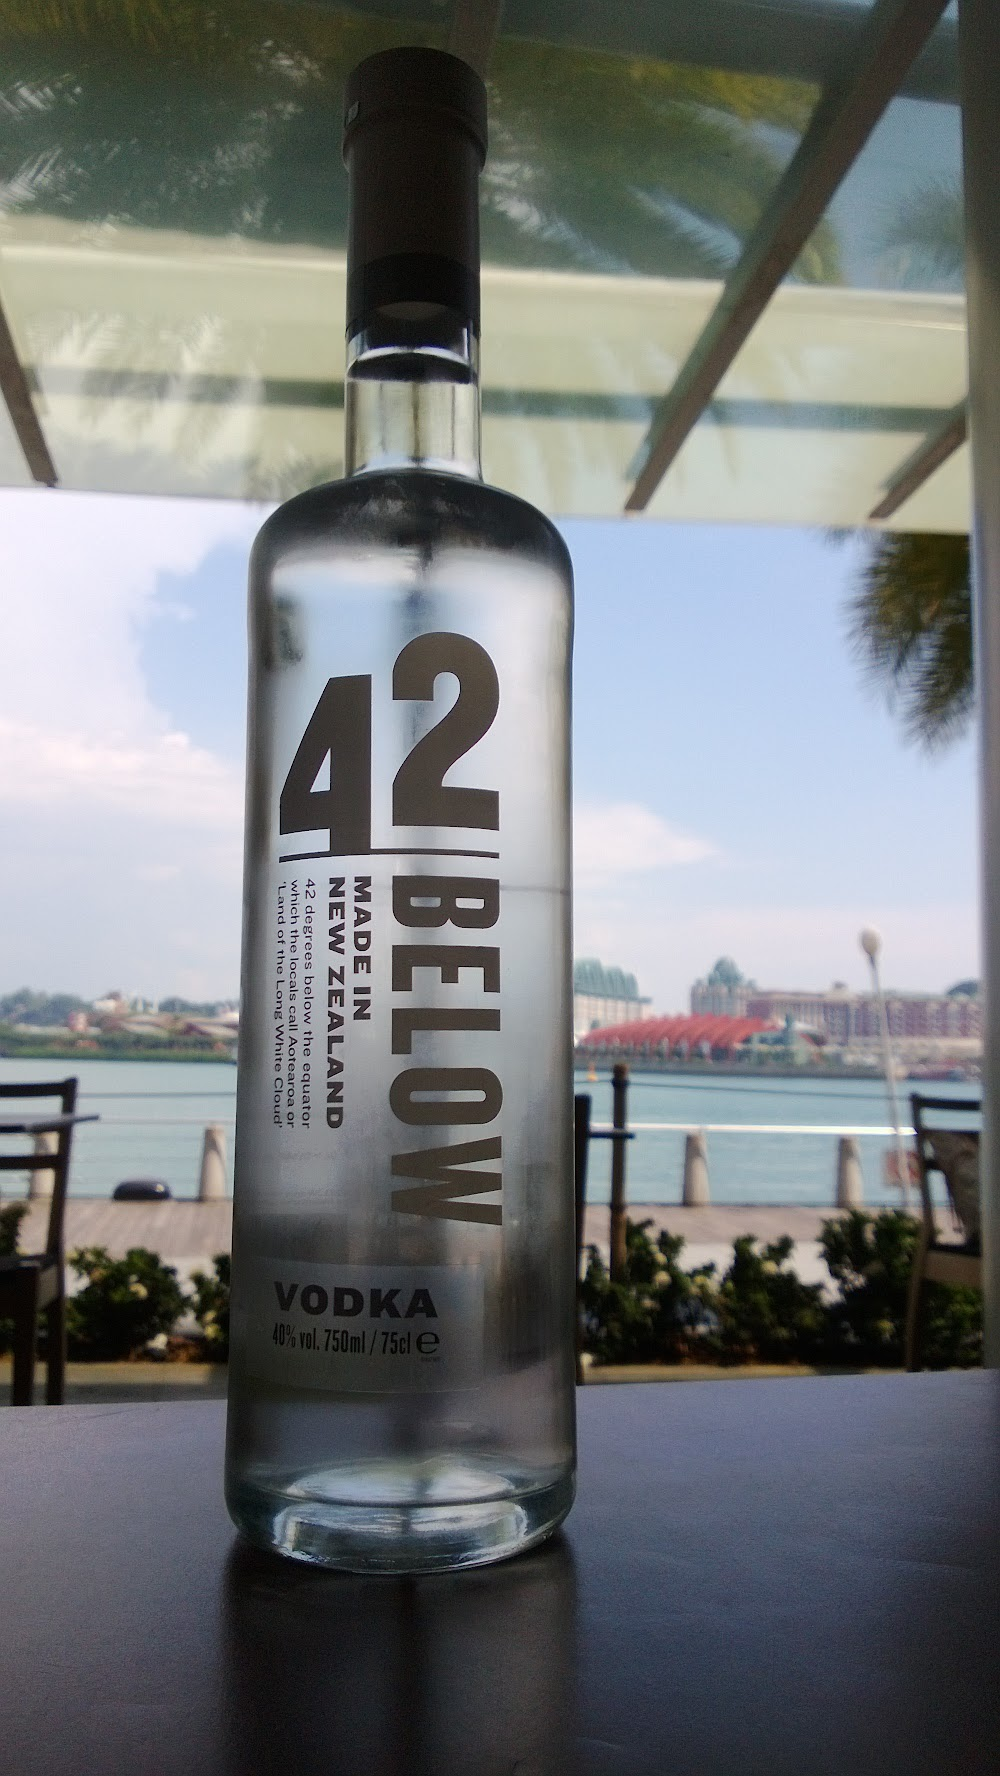 vodka-brands-india_42_below